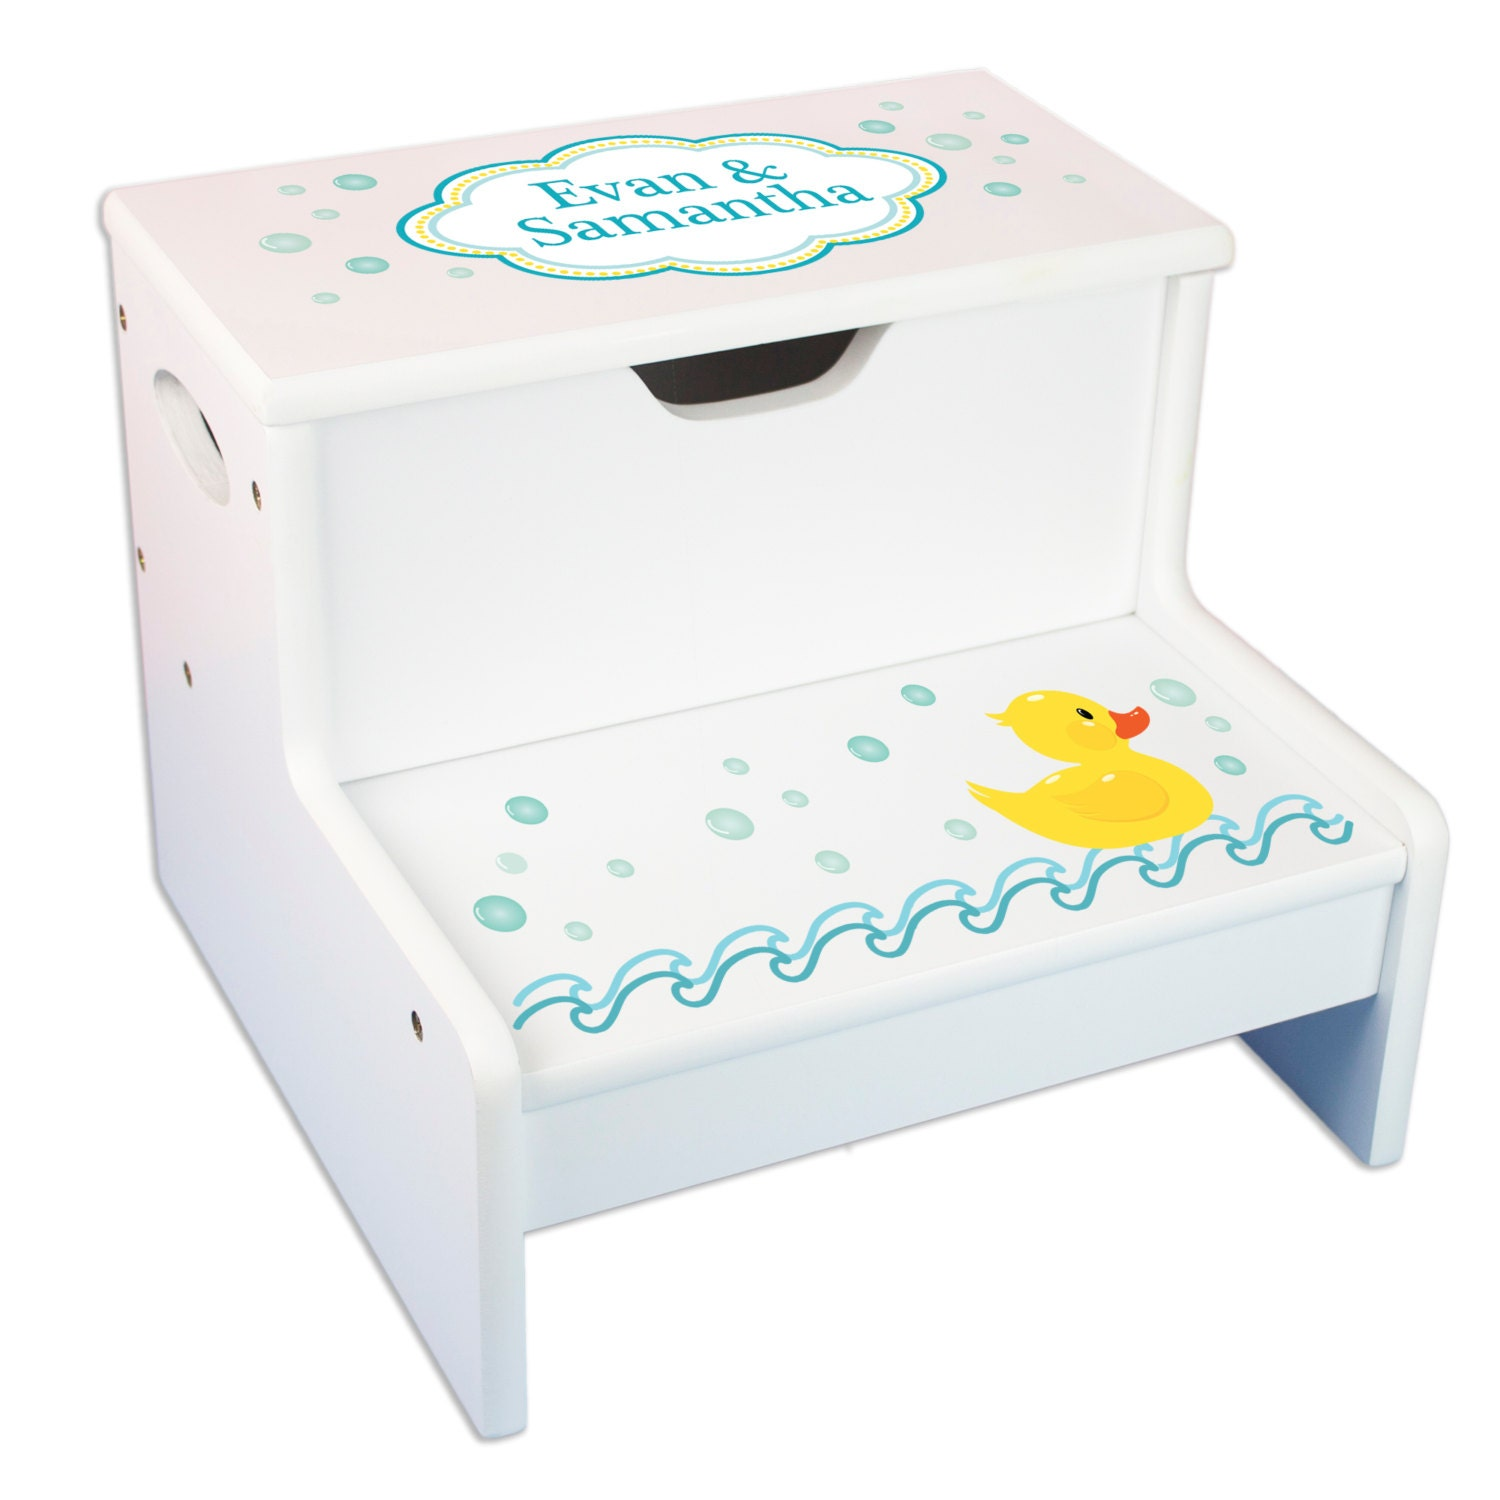 personalized bath stool rubber ducky step stool with storage. Black Bedroom Furniture Sets. Home Design Ideas